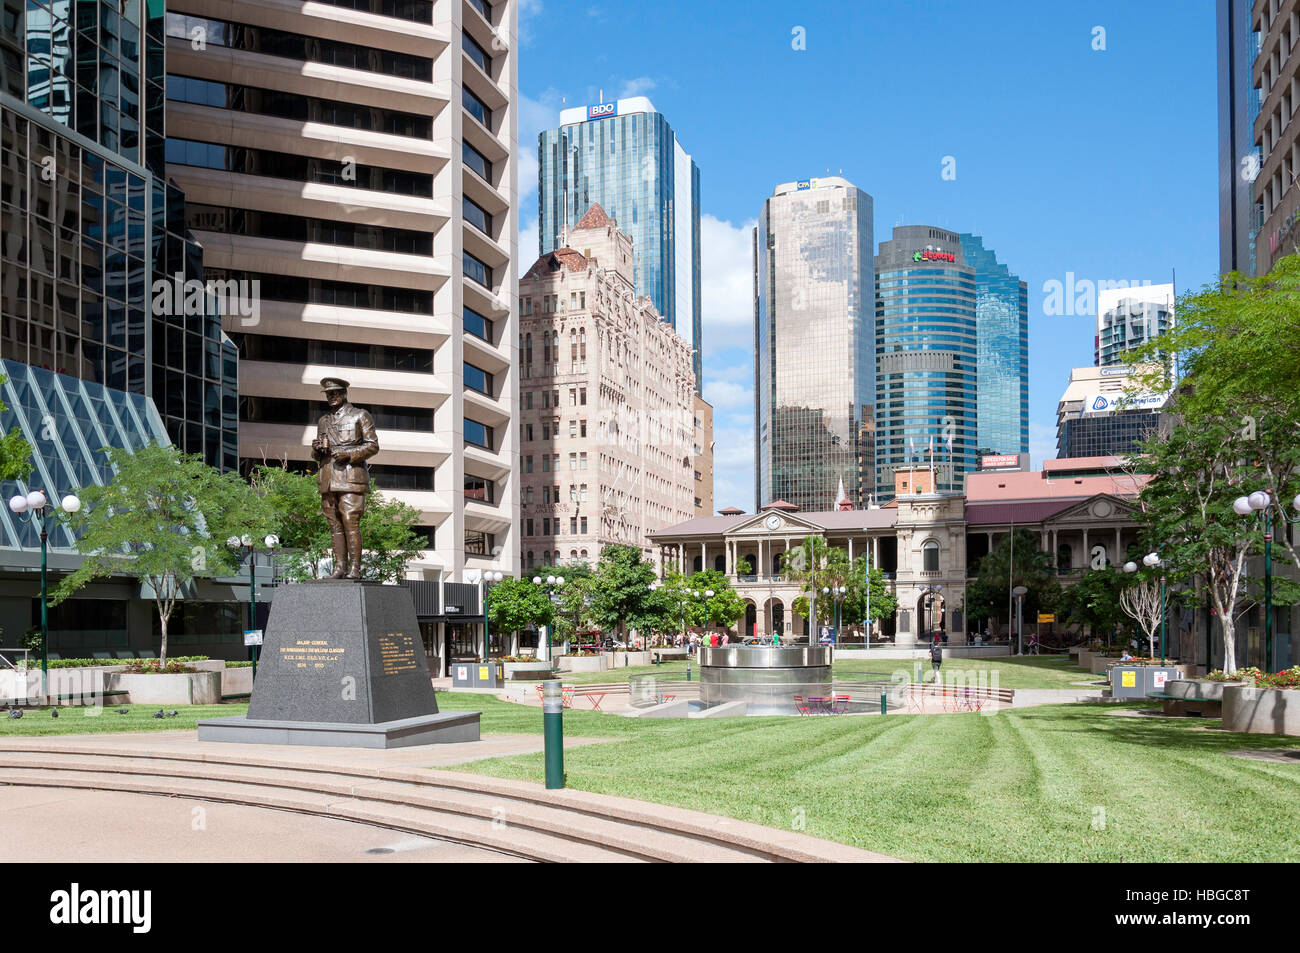 Railway Square, Brisbane City, Brisbane, Queensland, Australia - Stock Image